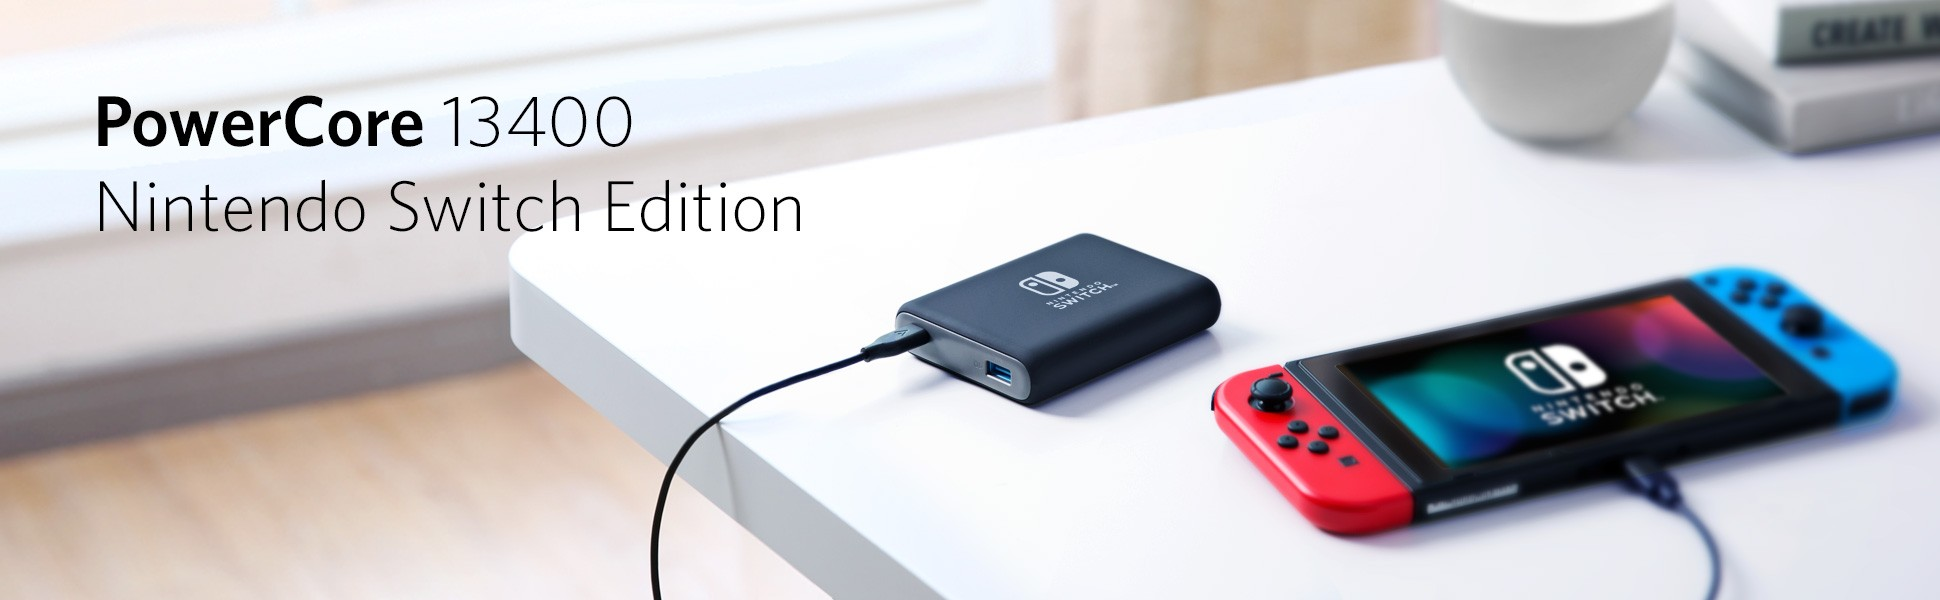 Anker Nintendo Switch Power Bank